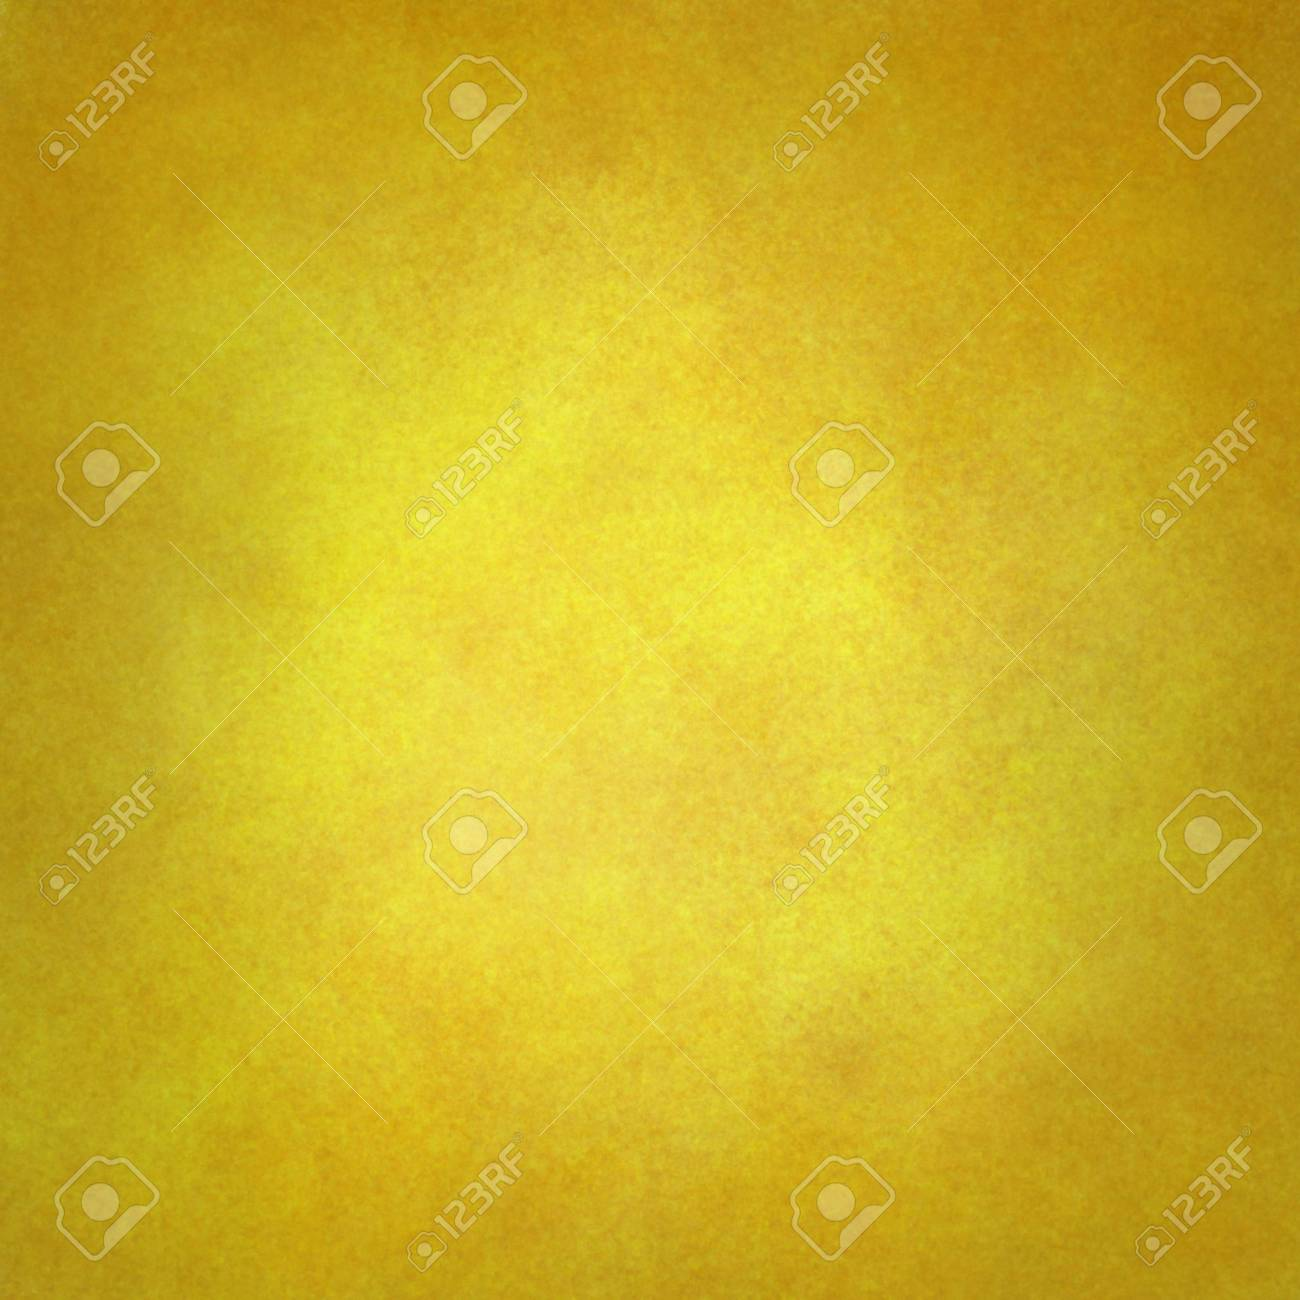 Gold Yellow Background With Texture And Faint Vignette Border ...